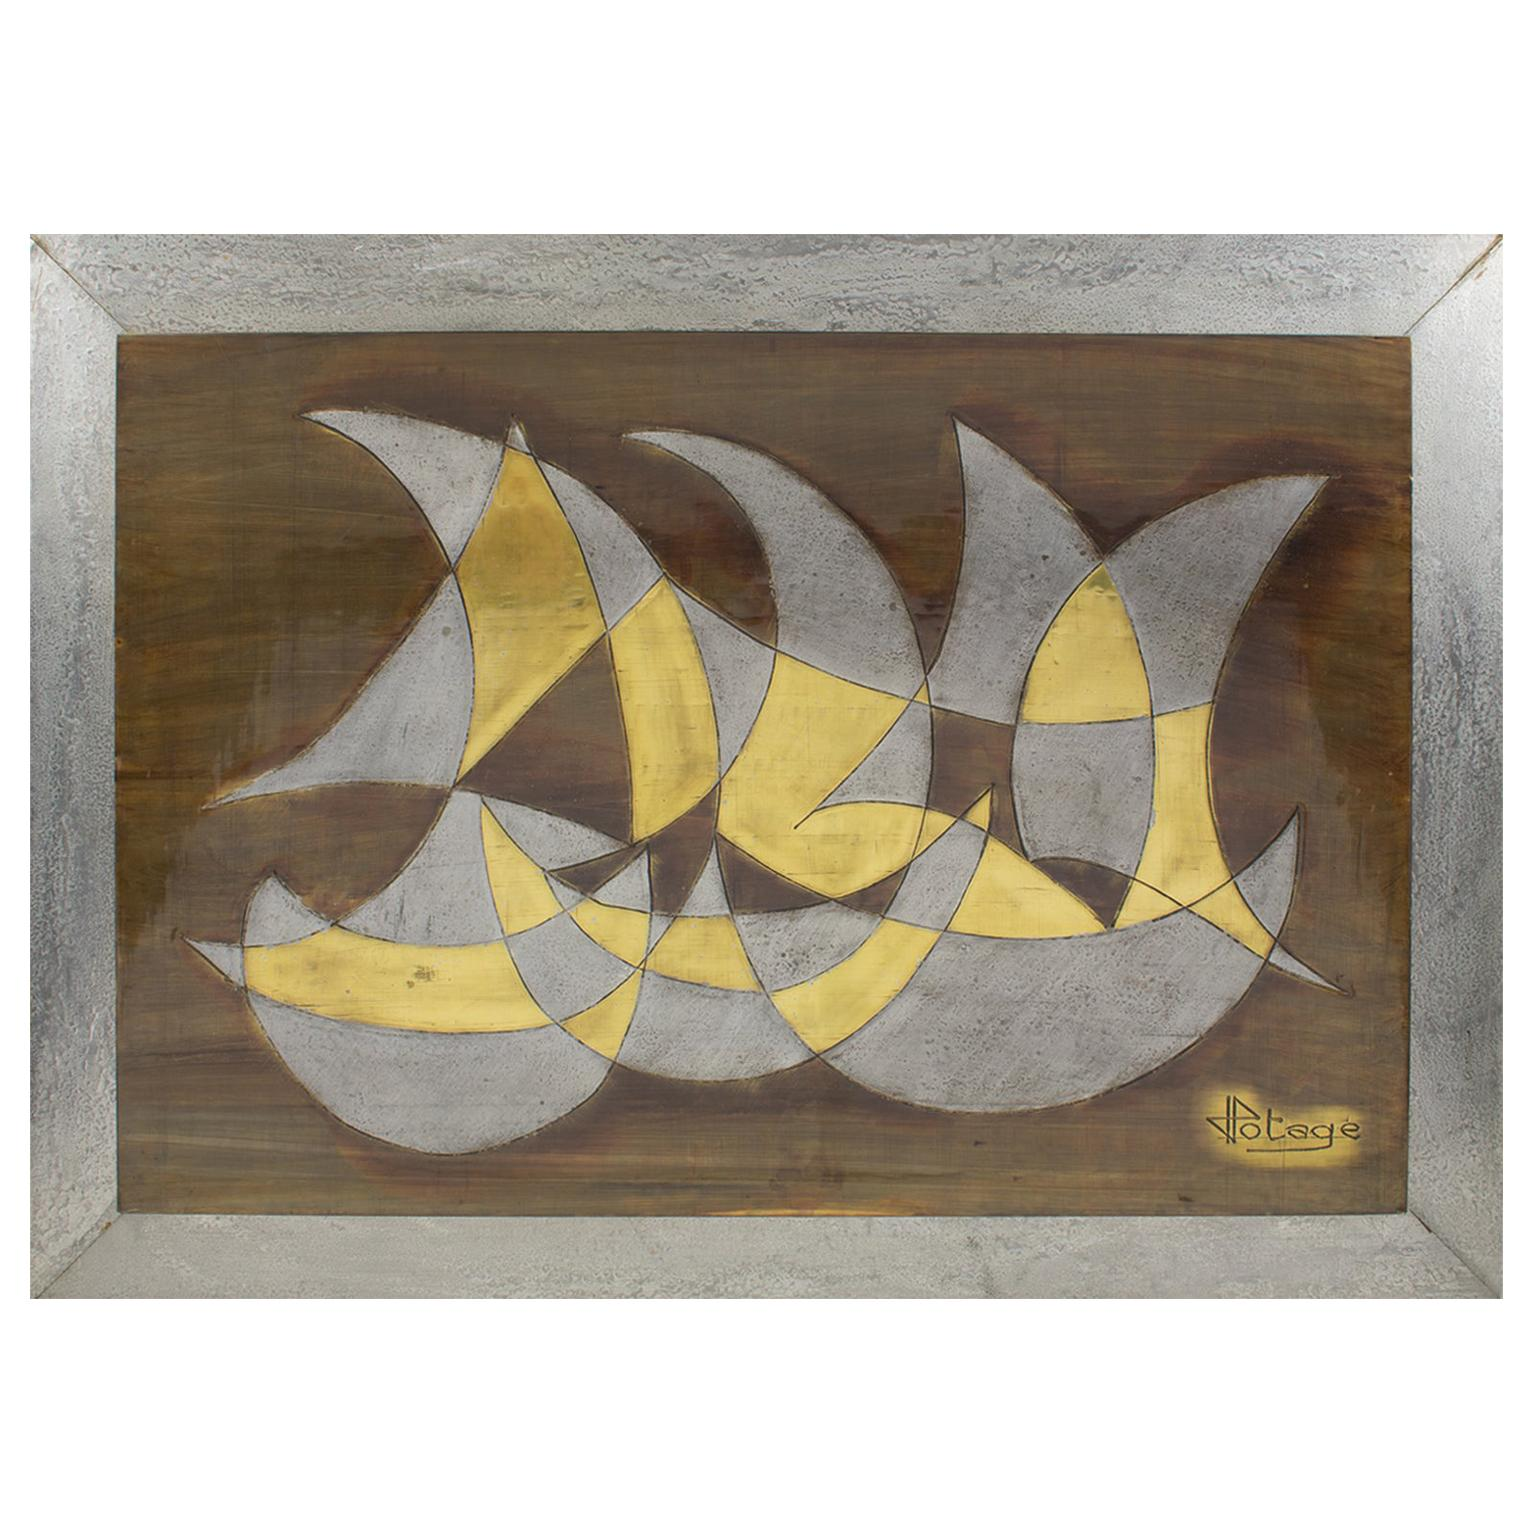 1970s Brutalist Metal Wall Art Sculpture Panel by French Artist Jacques Potage